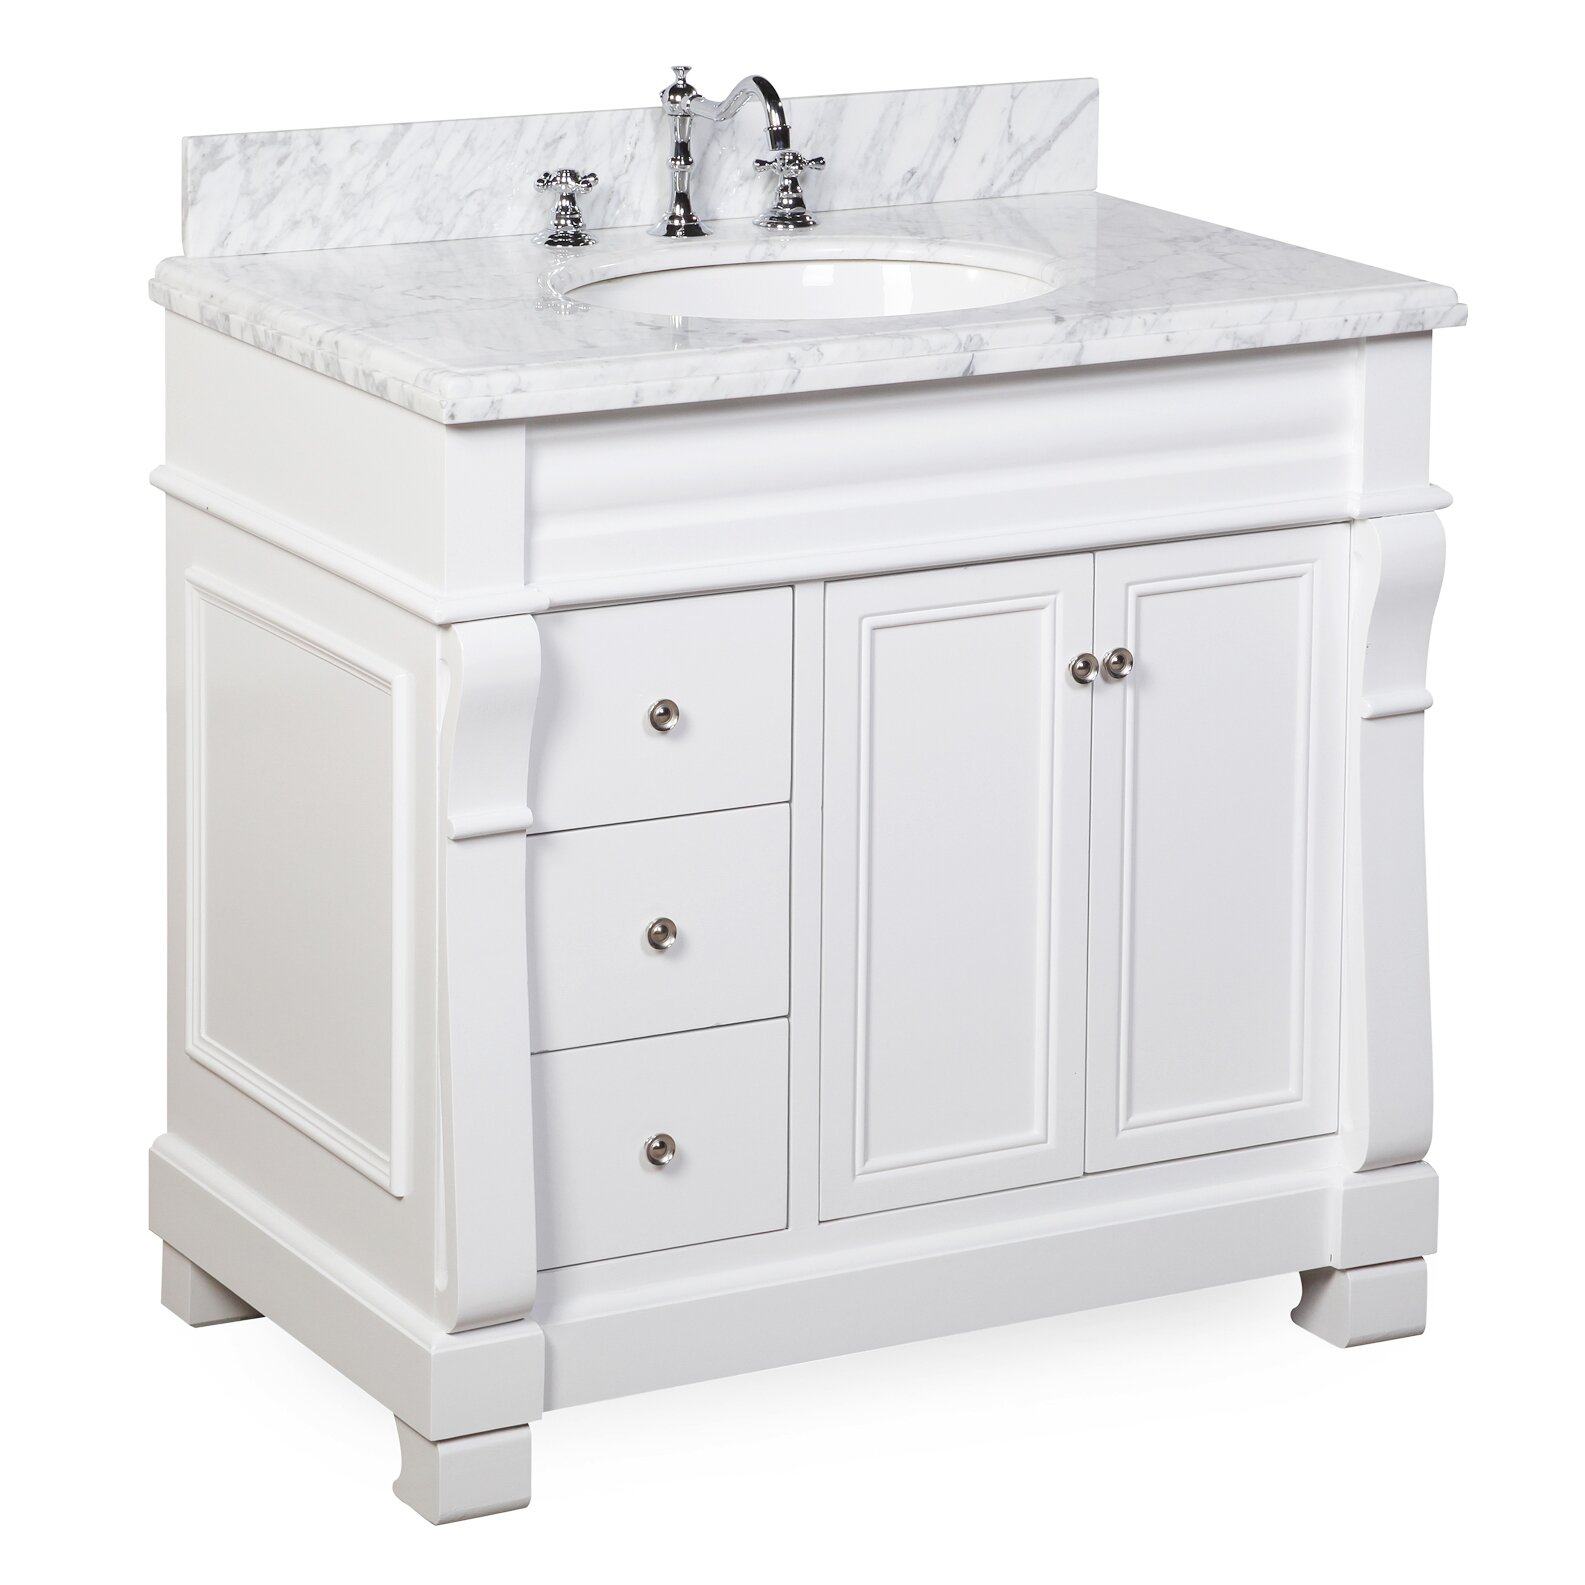 Kbc Westminster 36 Quot Single Bathroom Vanity Set Amp Reviews